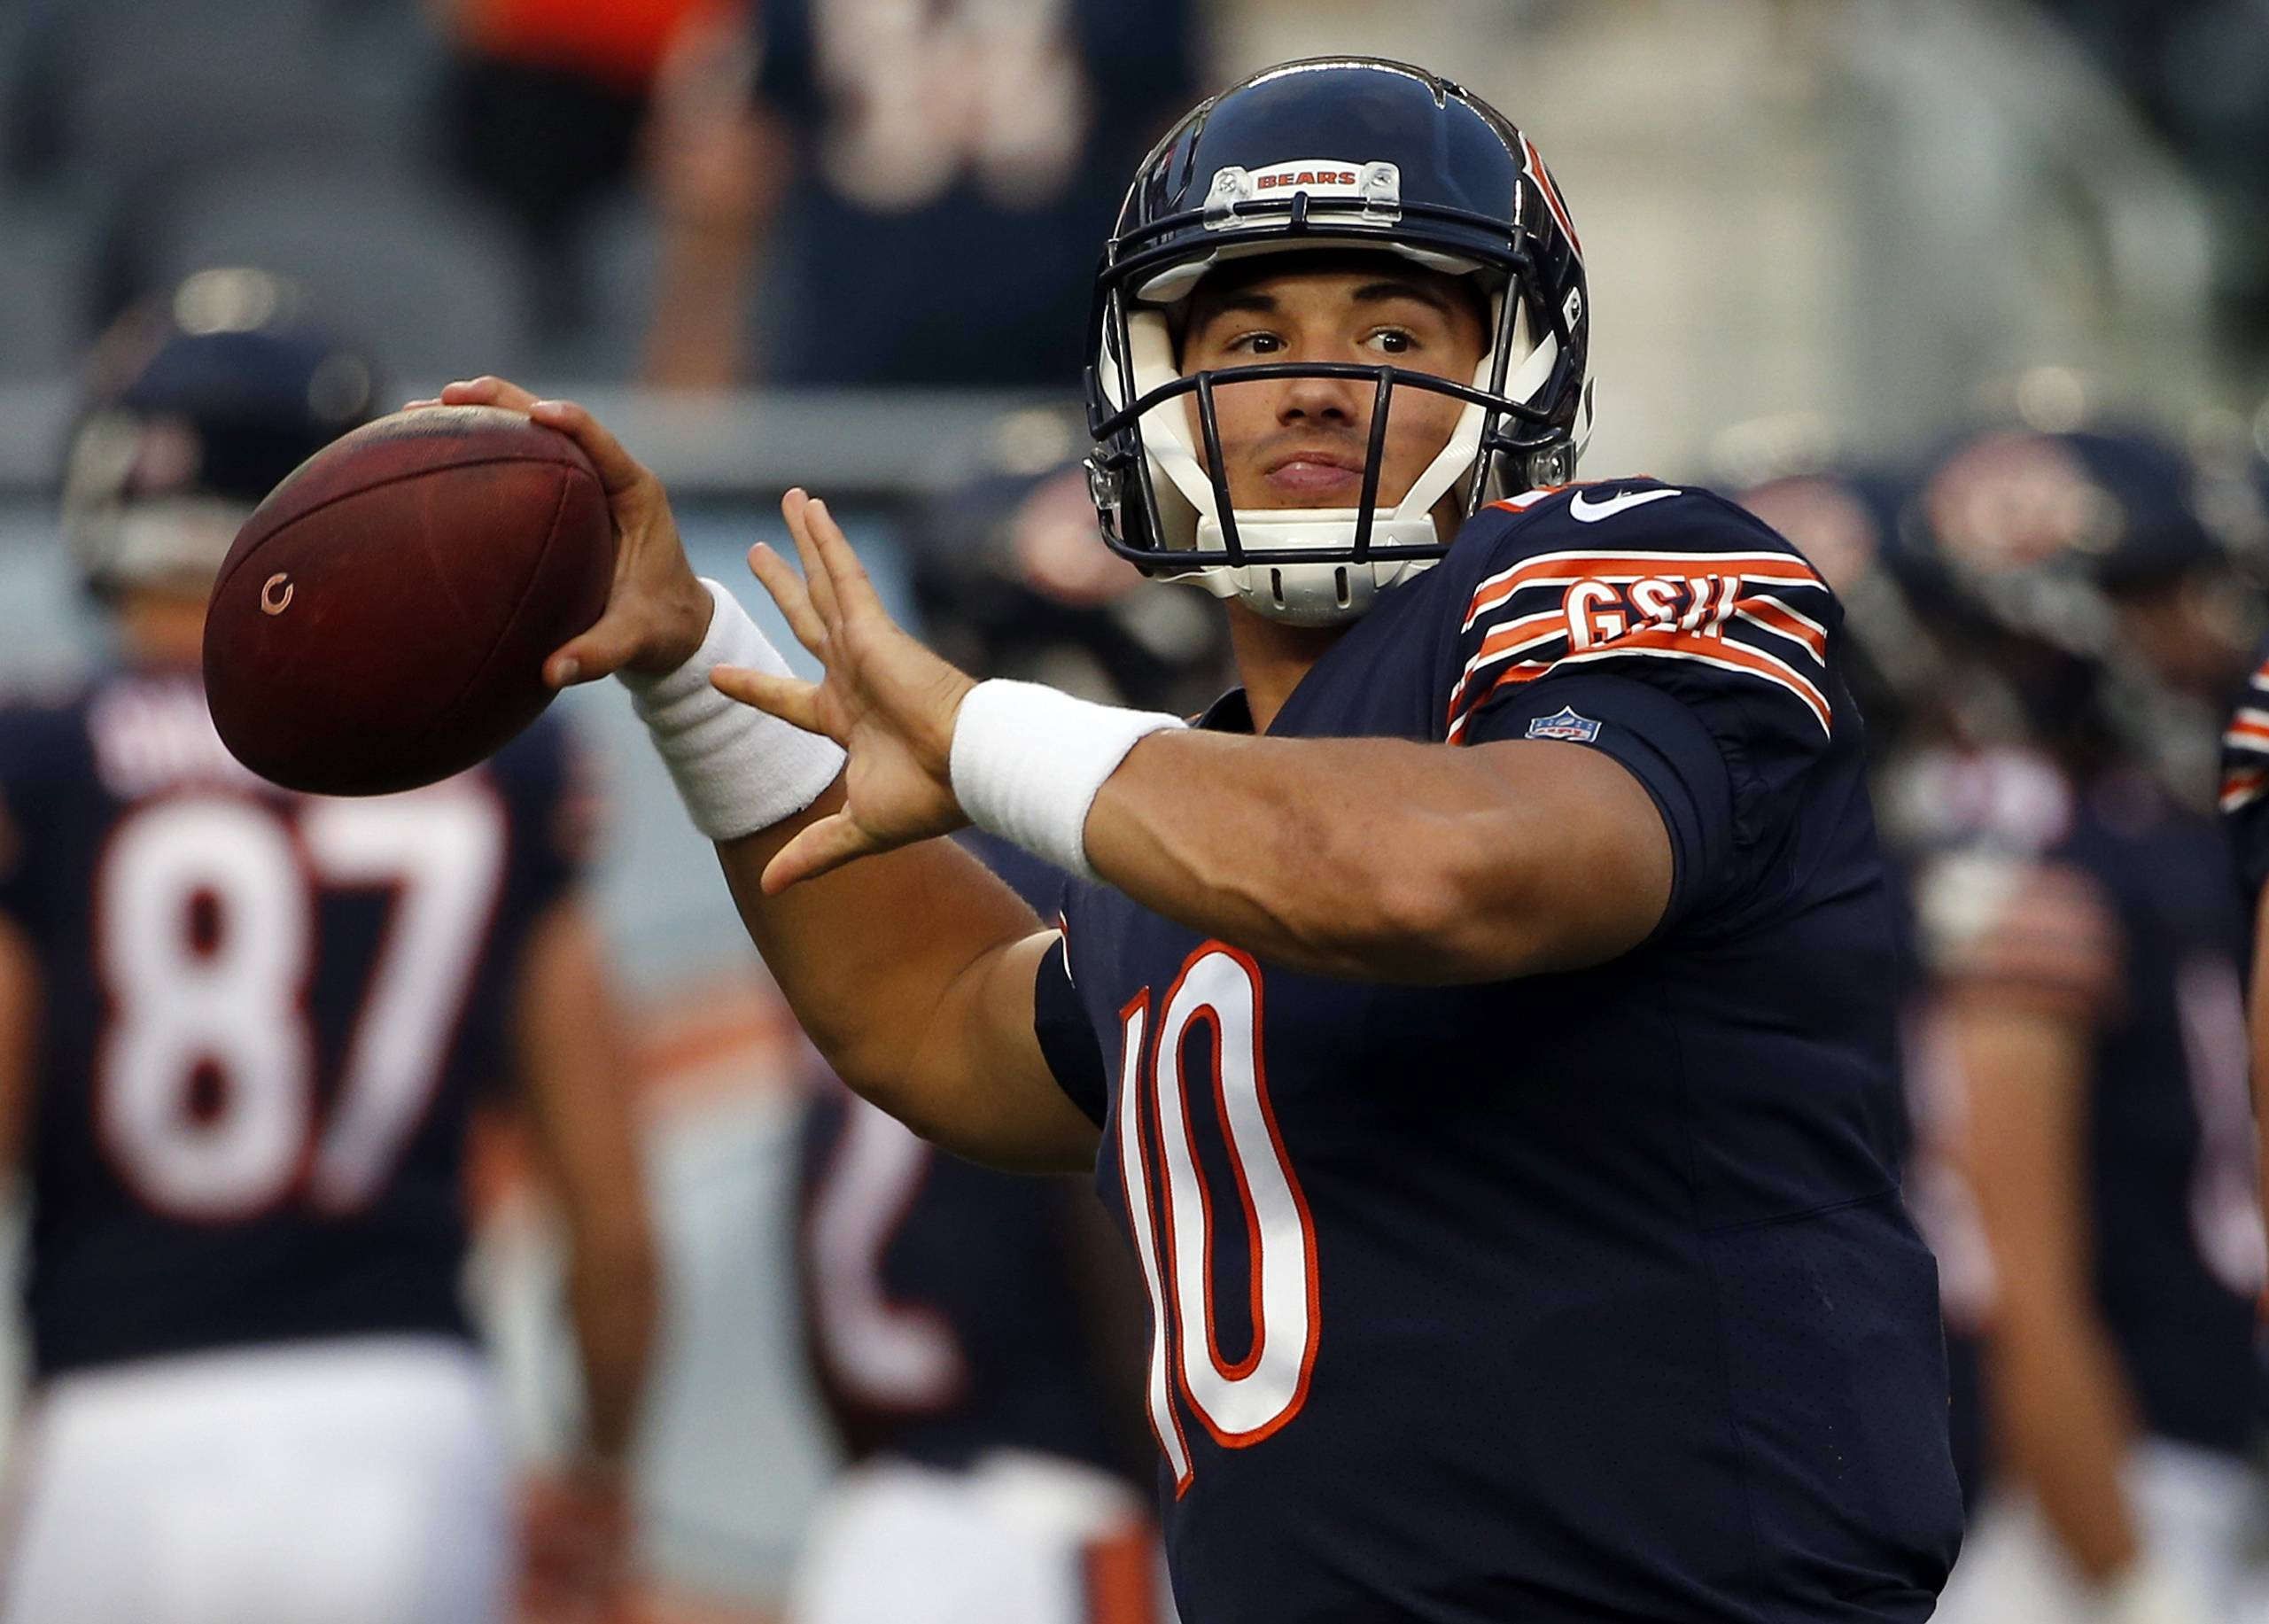 The Chicago Bears' backup quarterback warms up before a preseason game against the Cleveland Browns.